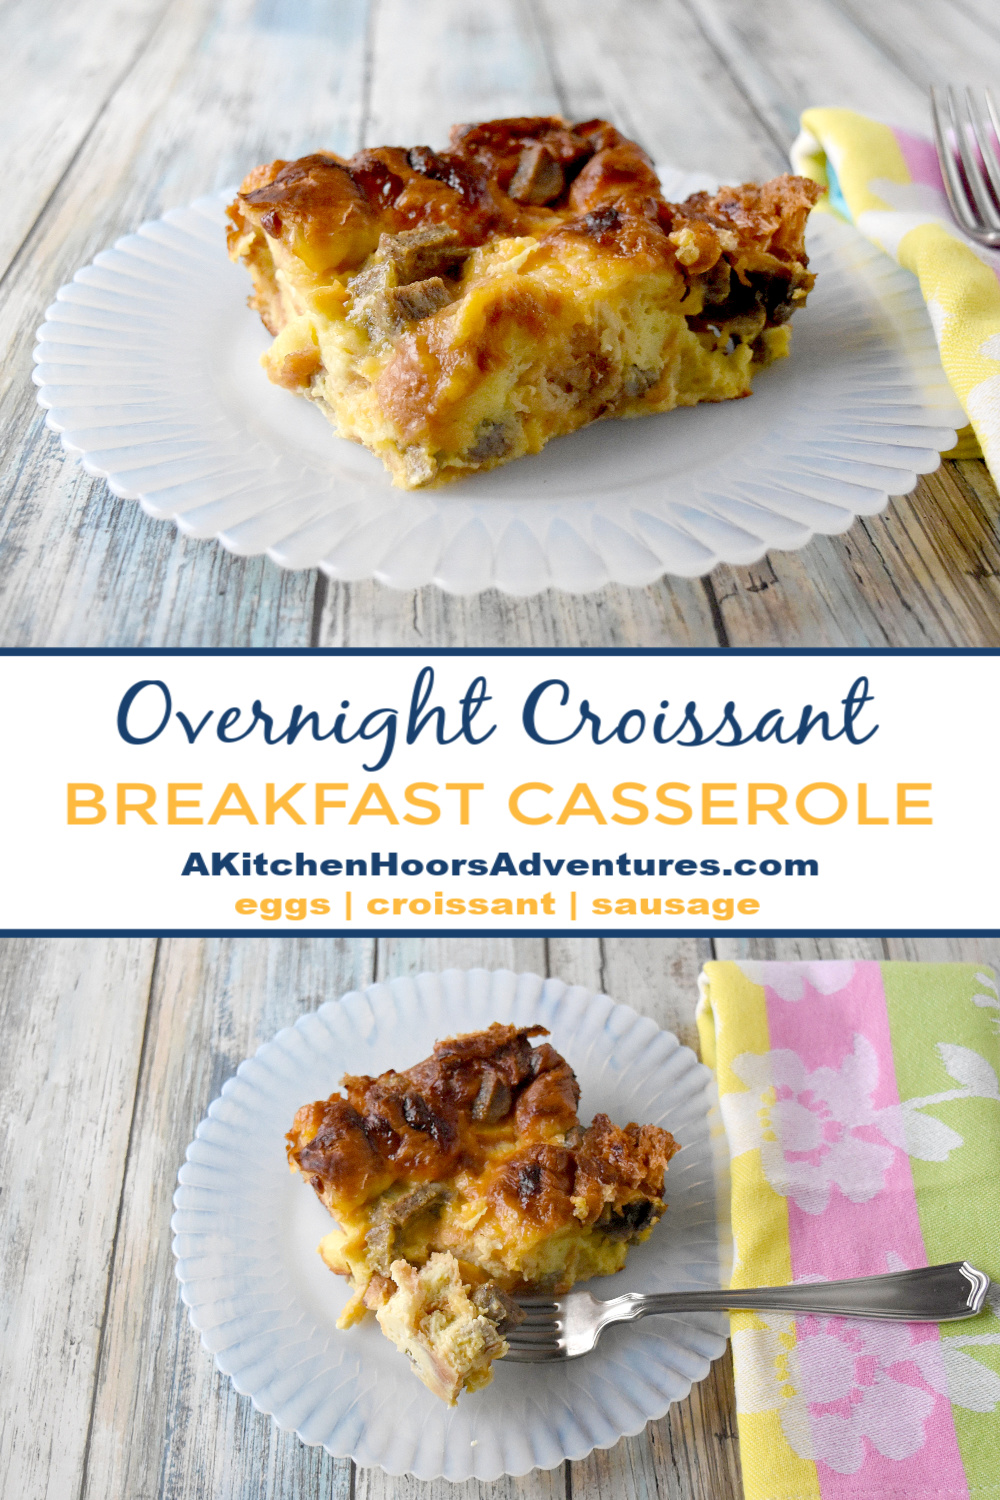 Sausage, Egg, and Cheese Croissant Casserole has just a few ingredients, comes together easily, can be made ahead, and TASTES AWESOME!